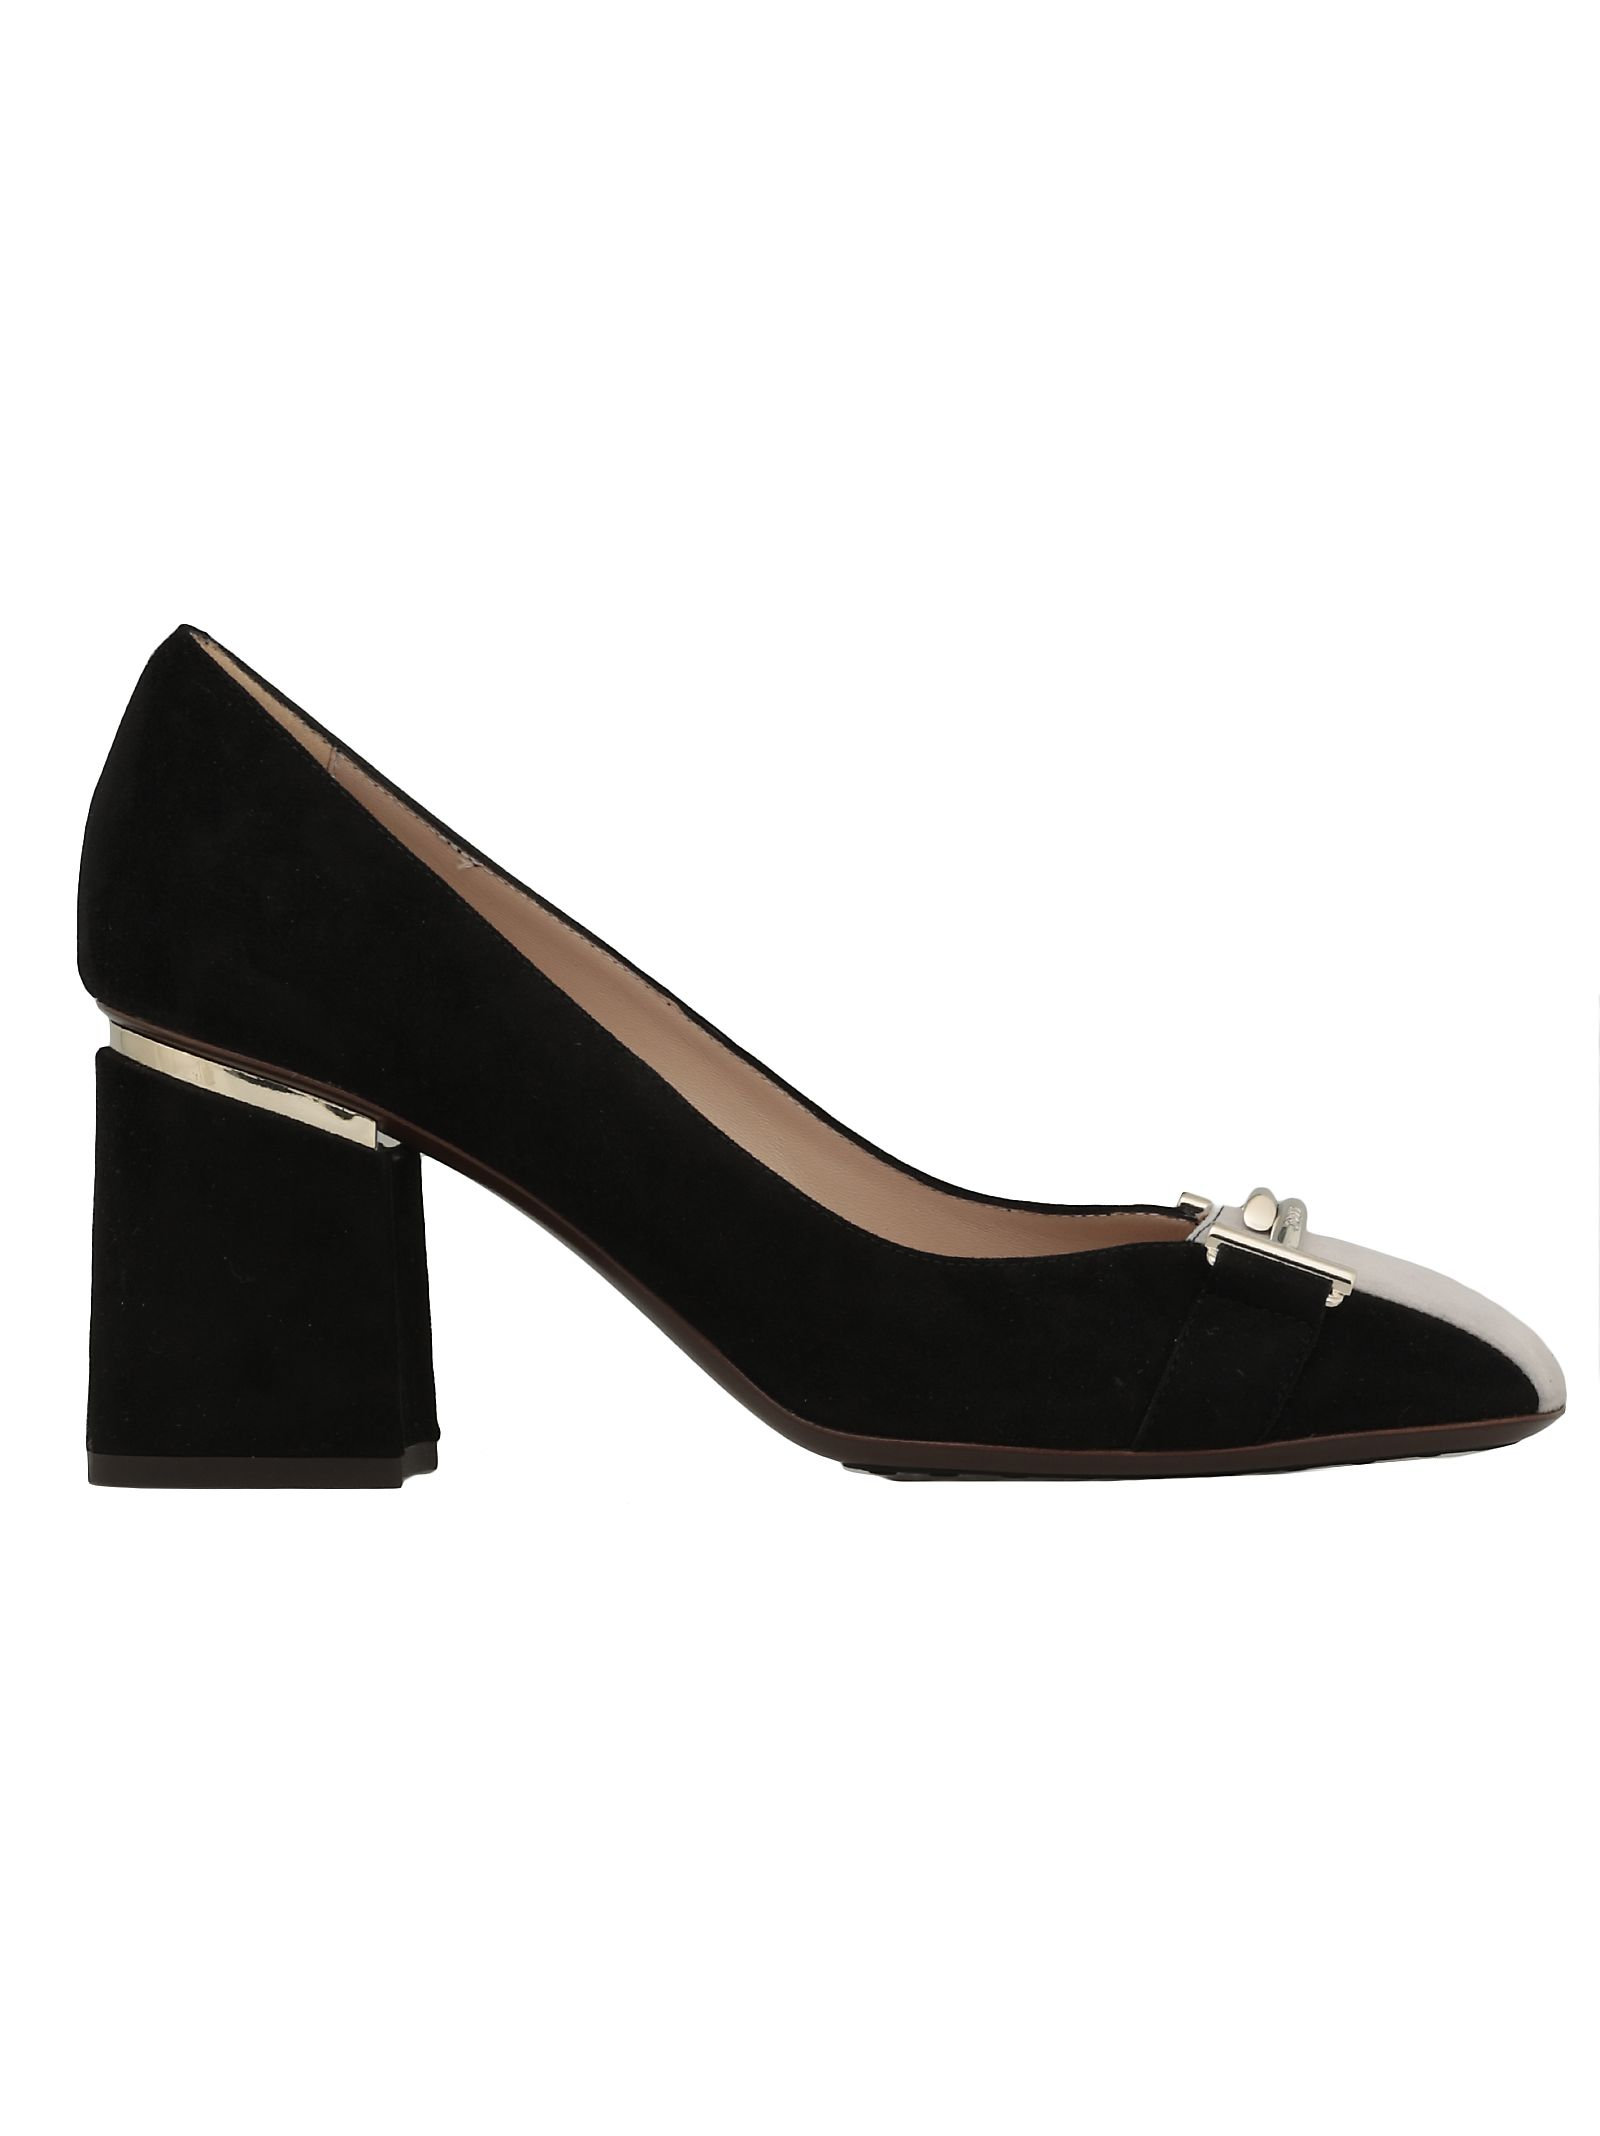 Tod's Suede Leather Pump Shoe